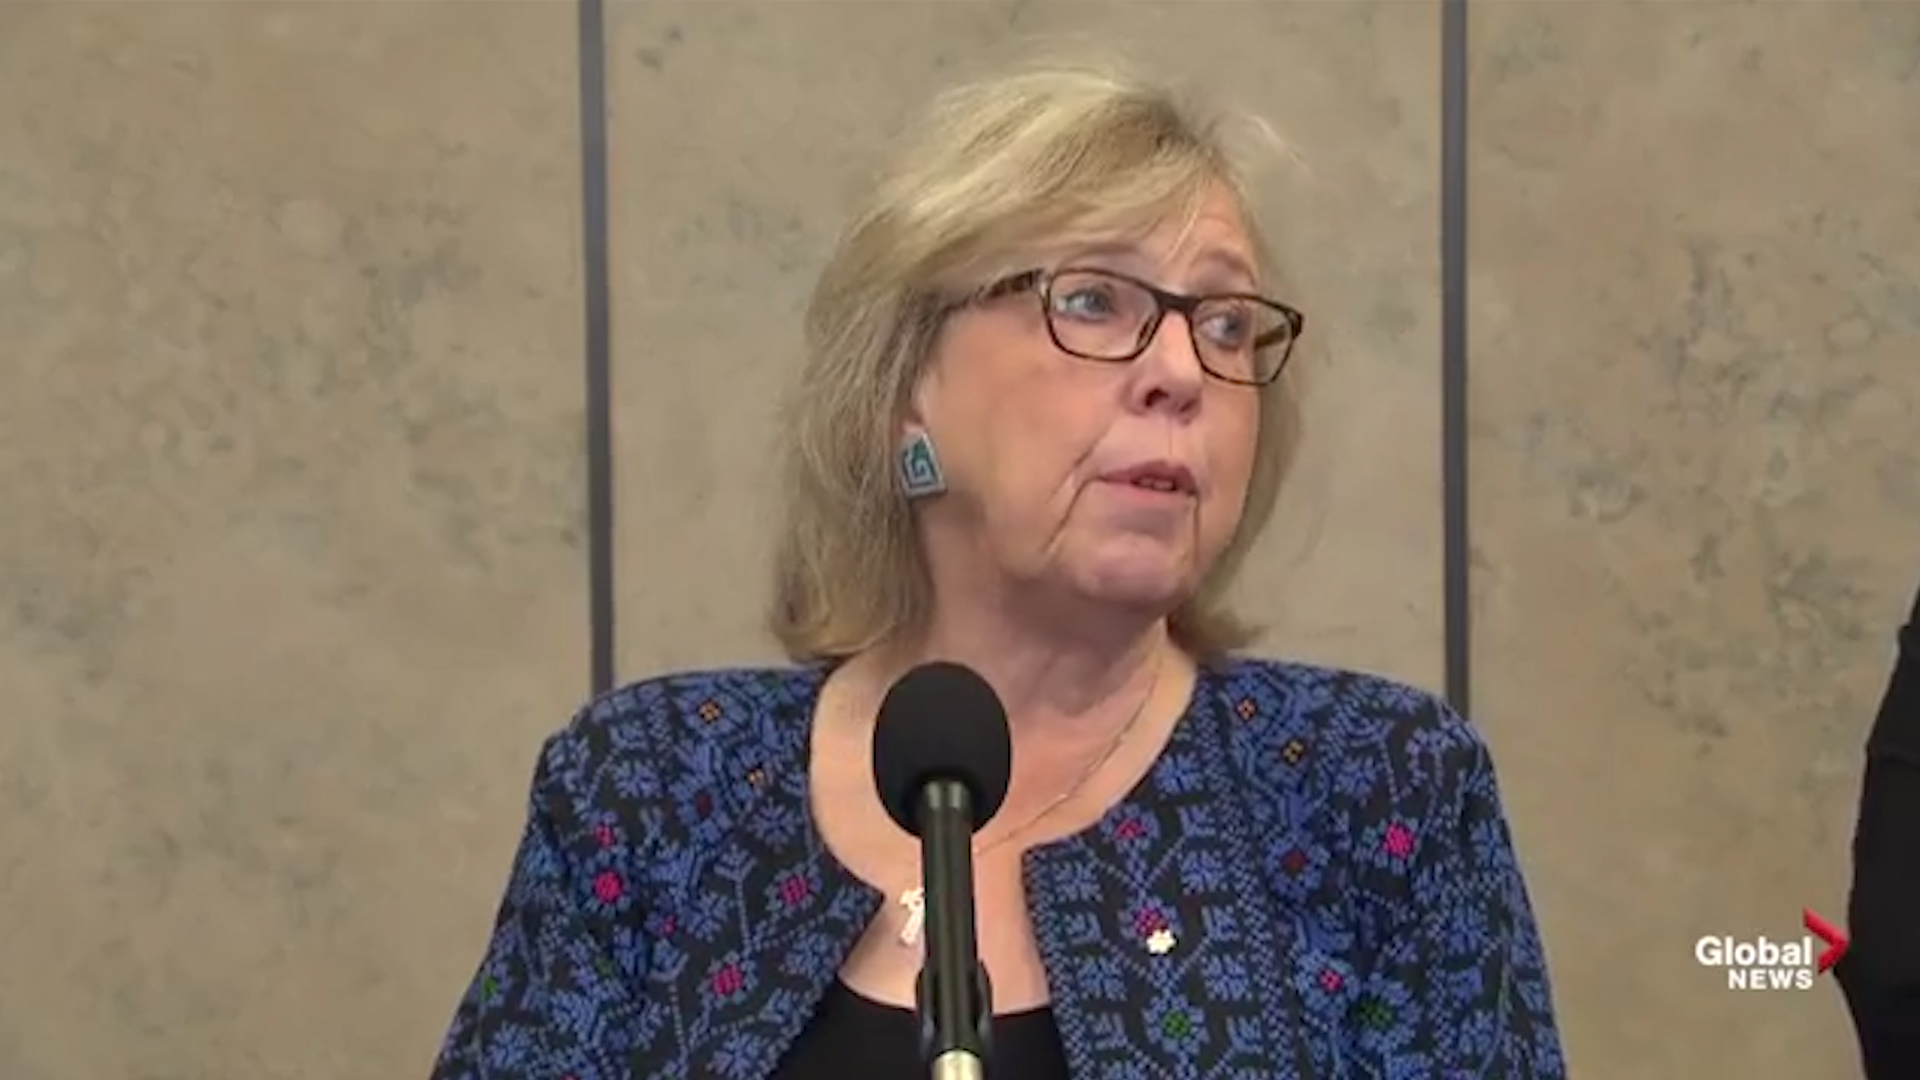 Elizabeth May on Alberta: 'fossil fuels have no economic future'